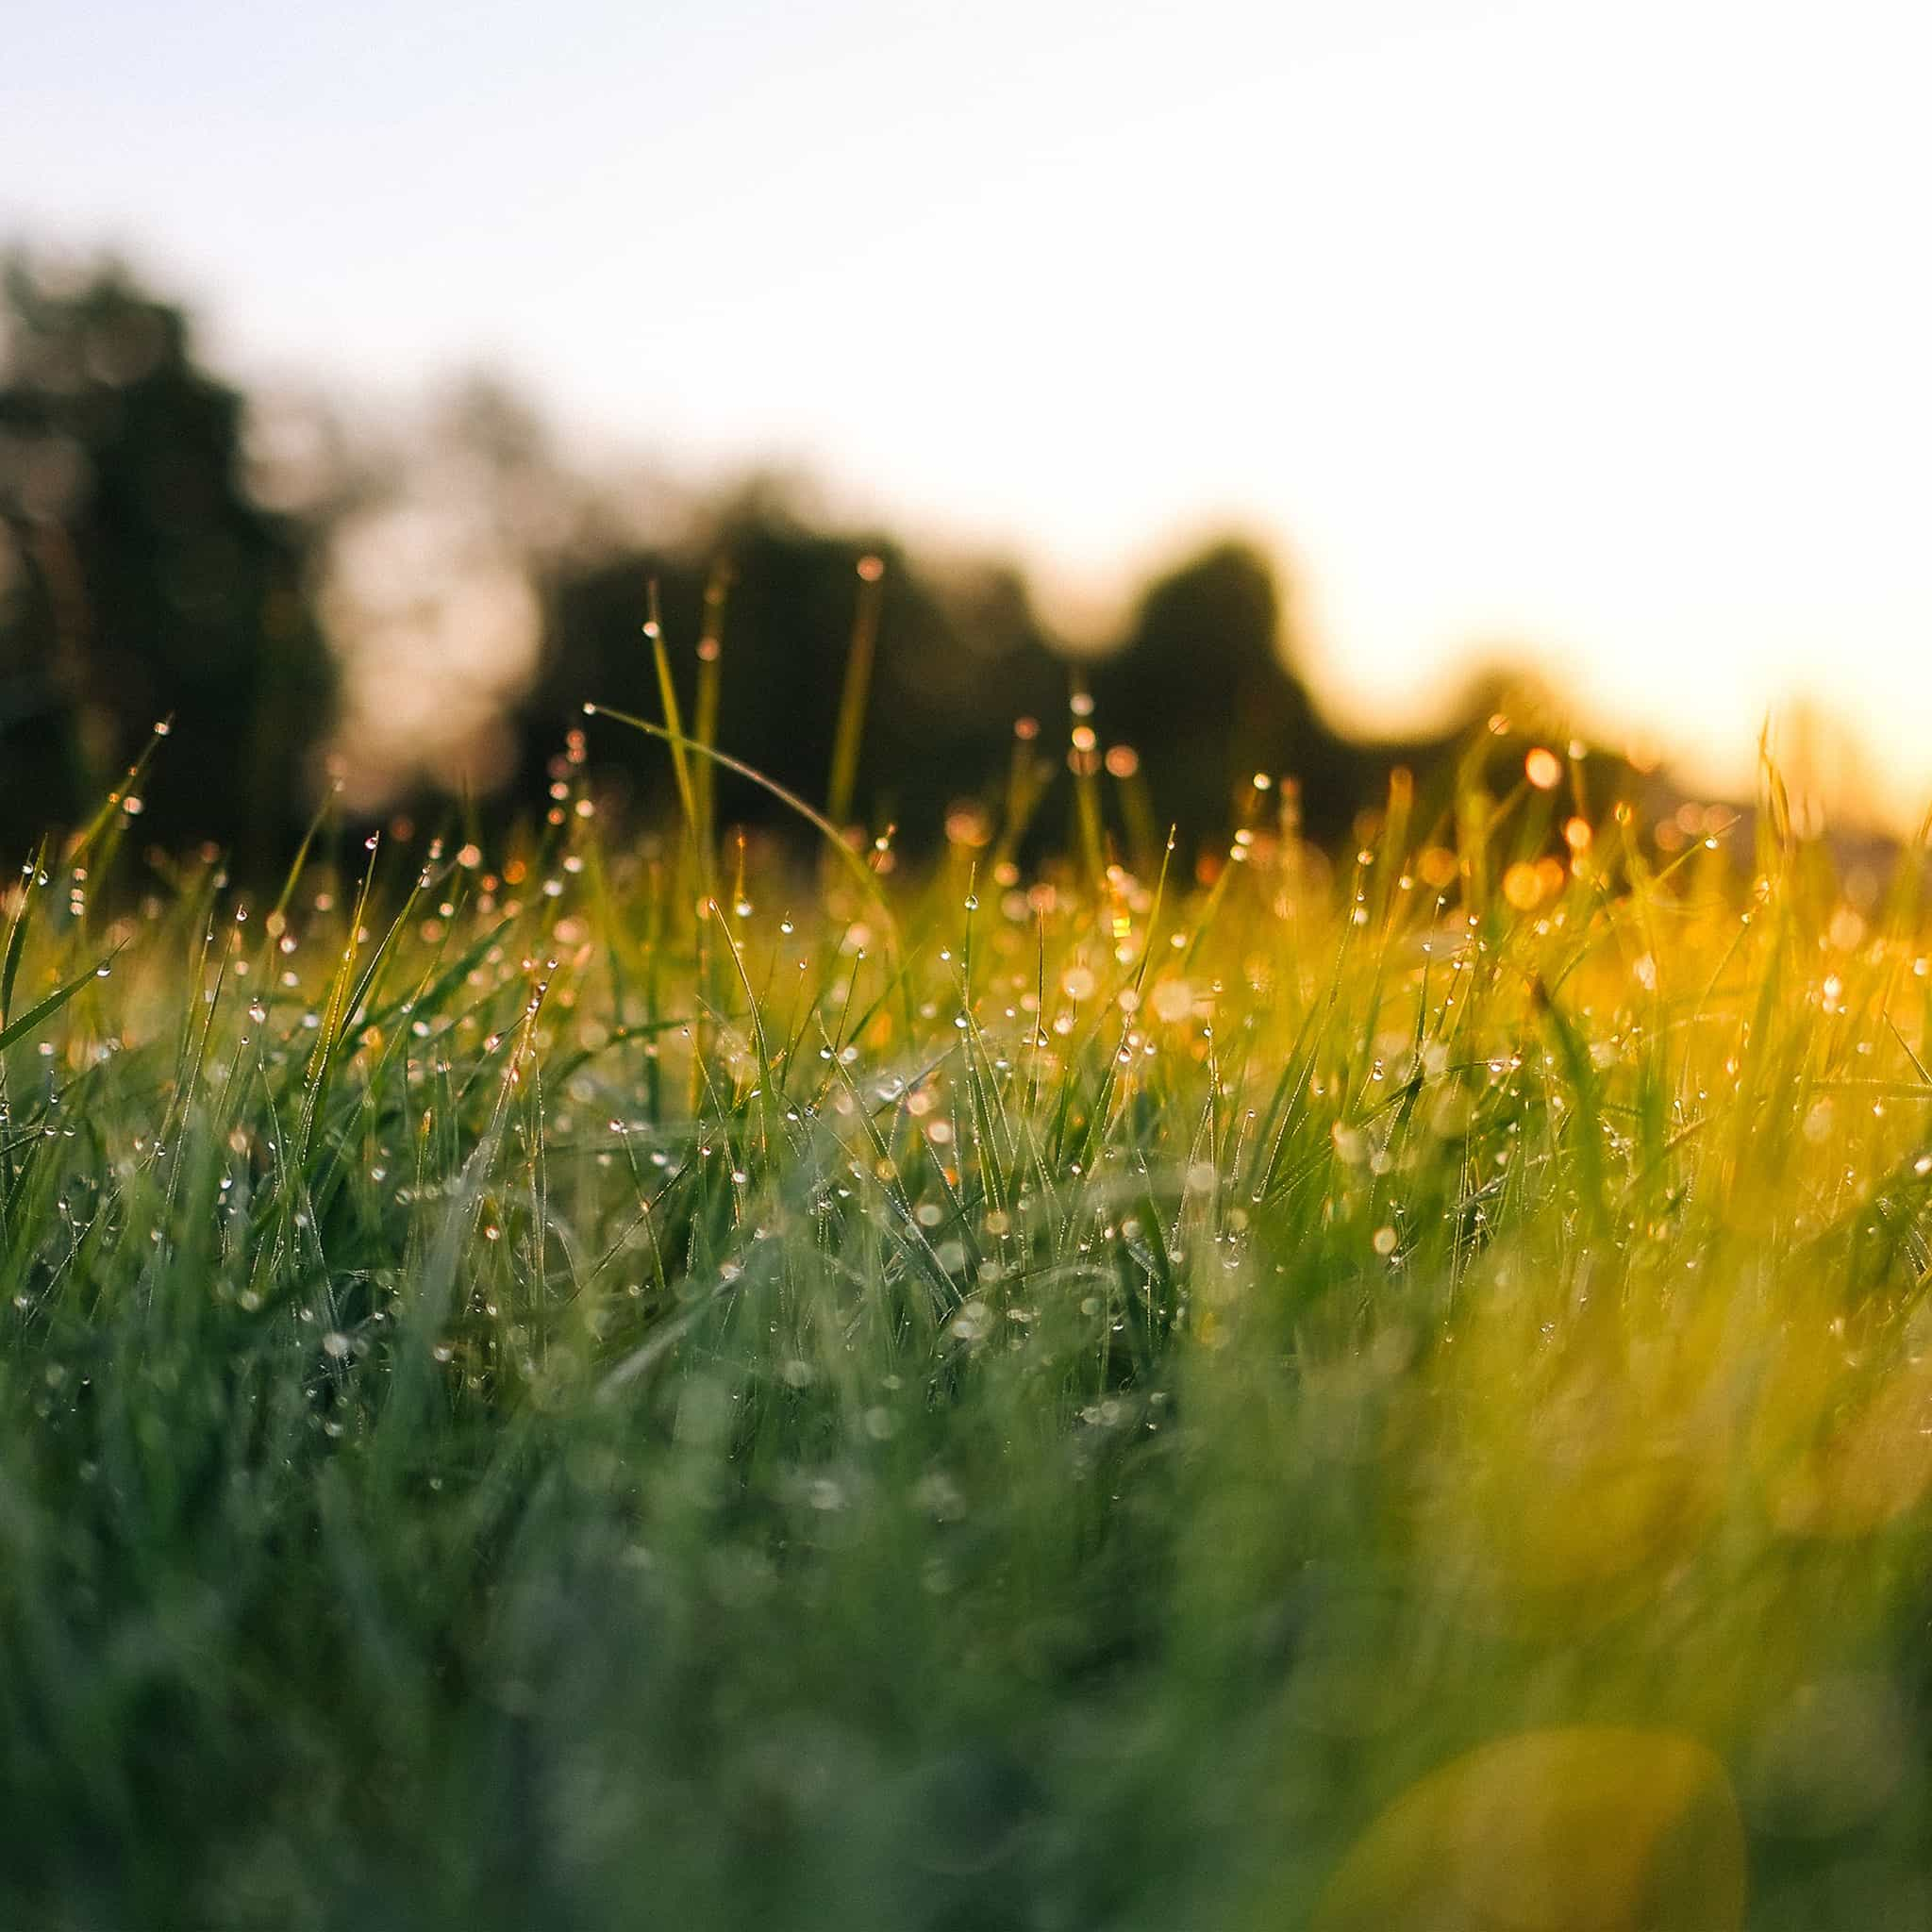 Papers.co-nm66-lawn-green-nature-sunset-light-bokeh-spring-android-medium